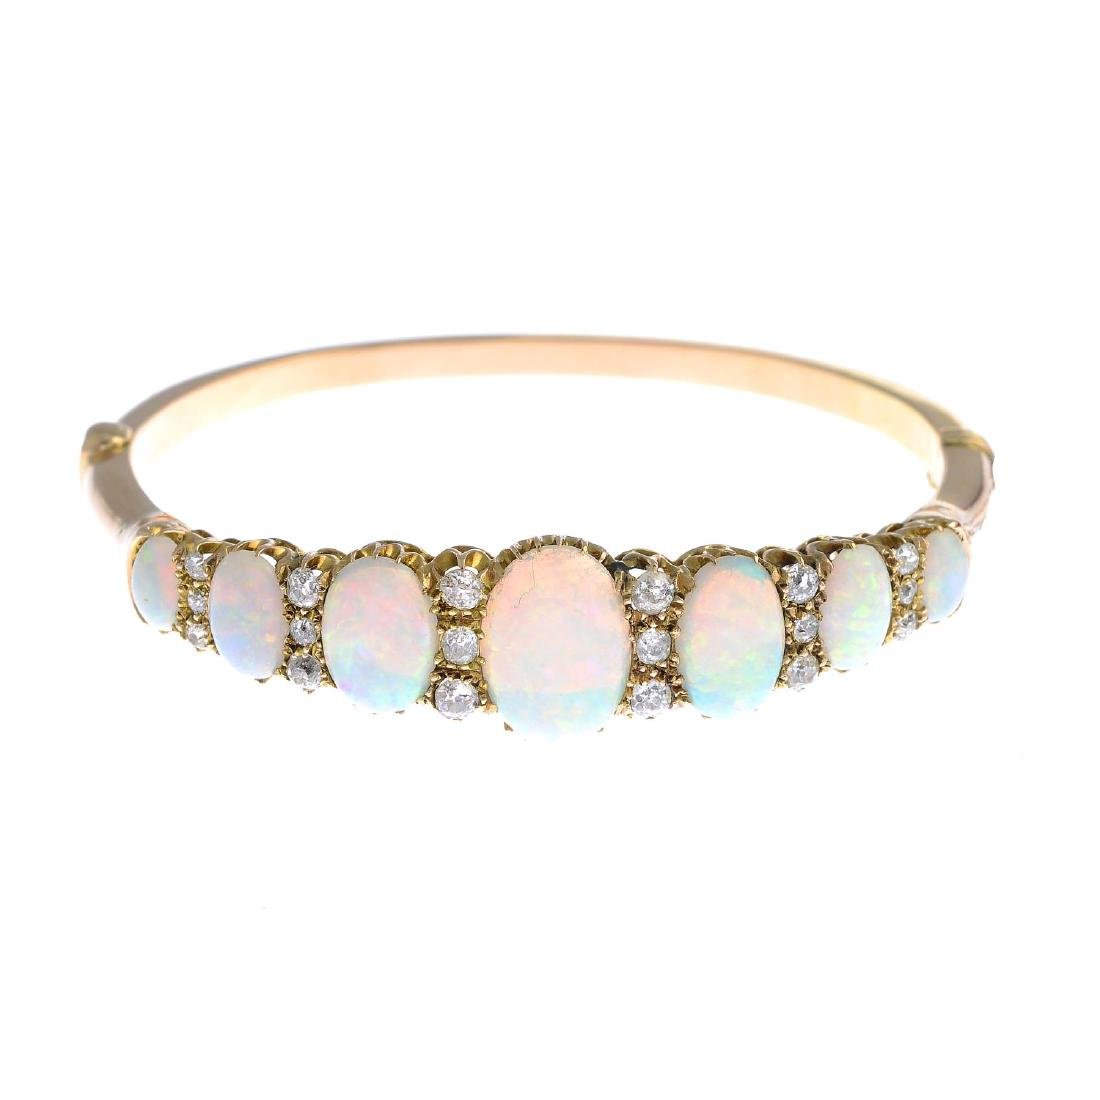 A late Victorian 18ct gold opal and diamond bangle. The